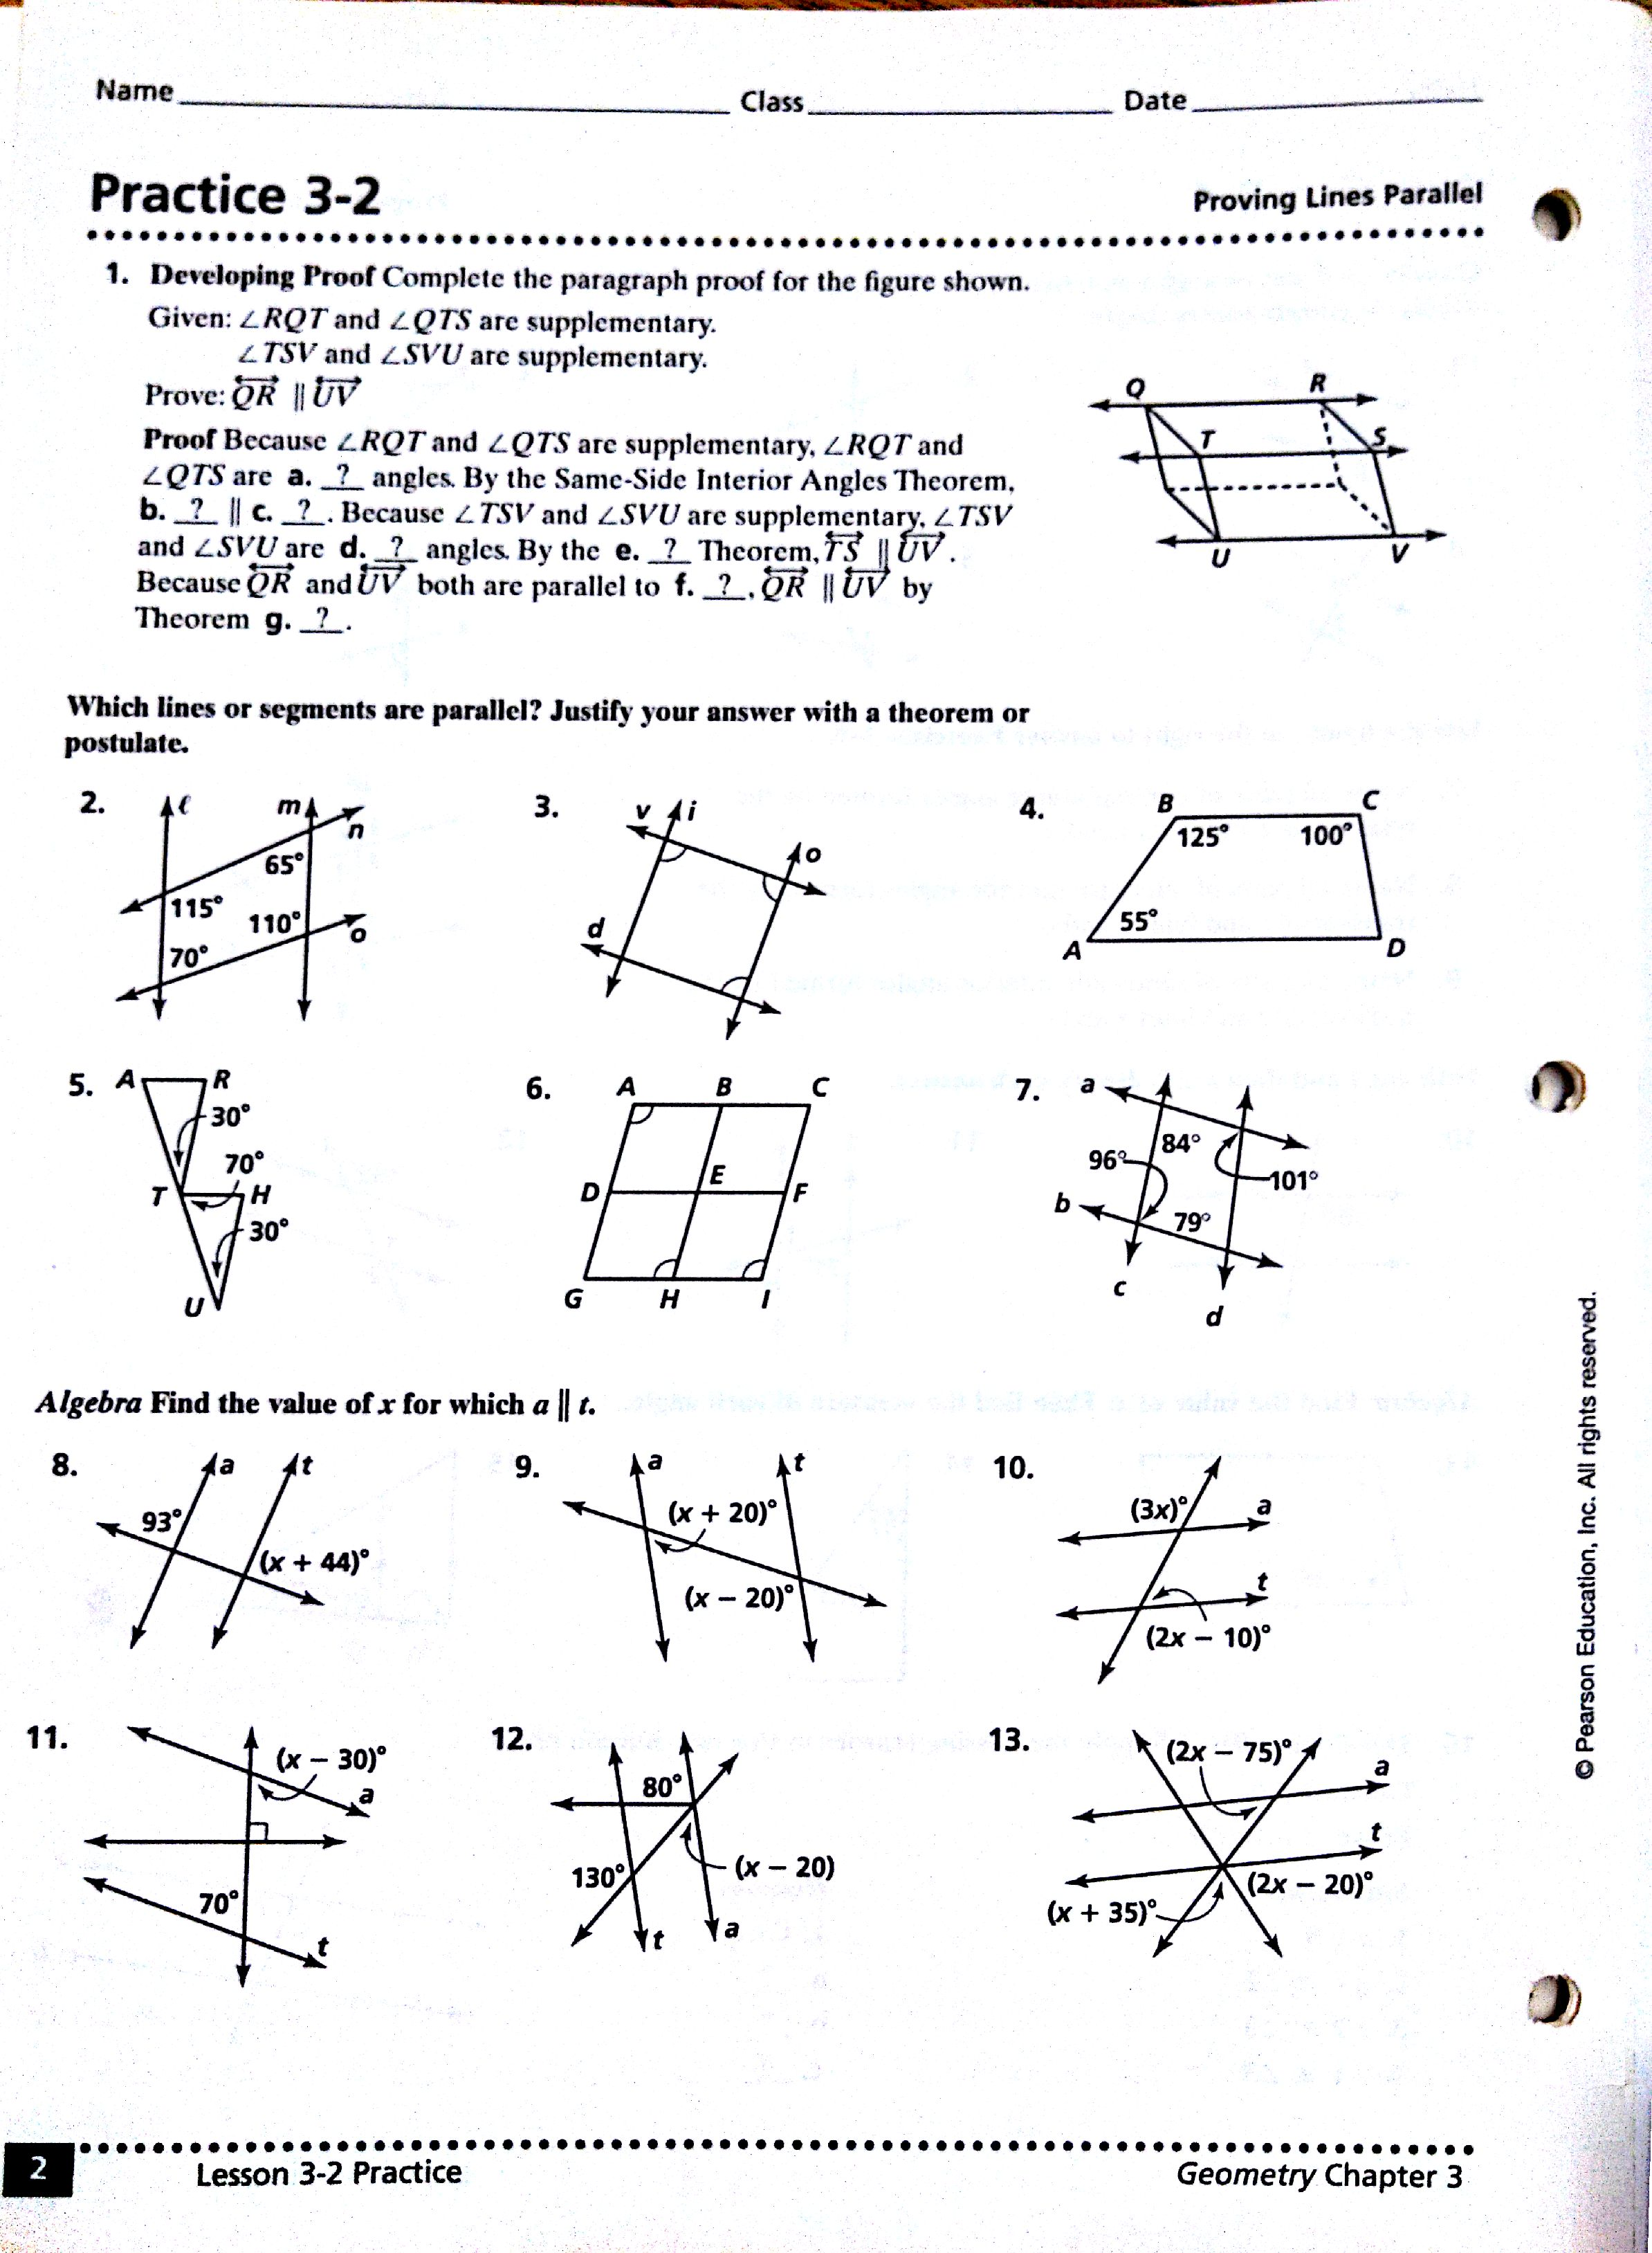 worksheet Congruent Polygons Worksheet worksheets math with mrs casillas 2 4 triangle congruence worksheet 7 parallel lines cut by a transversal